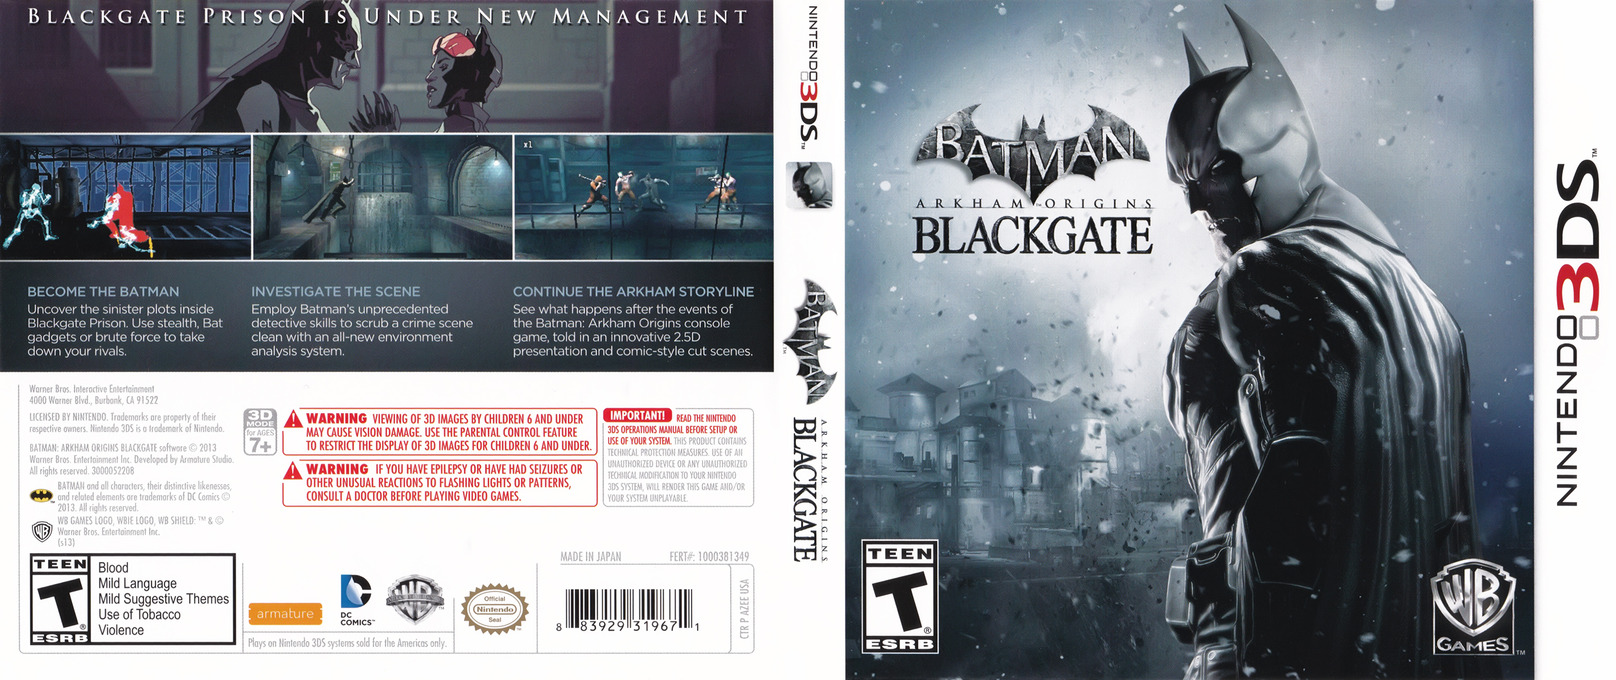 Batman - Arkham Origins Blackgate 3DS coverfullHQB (AZEE)